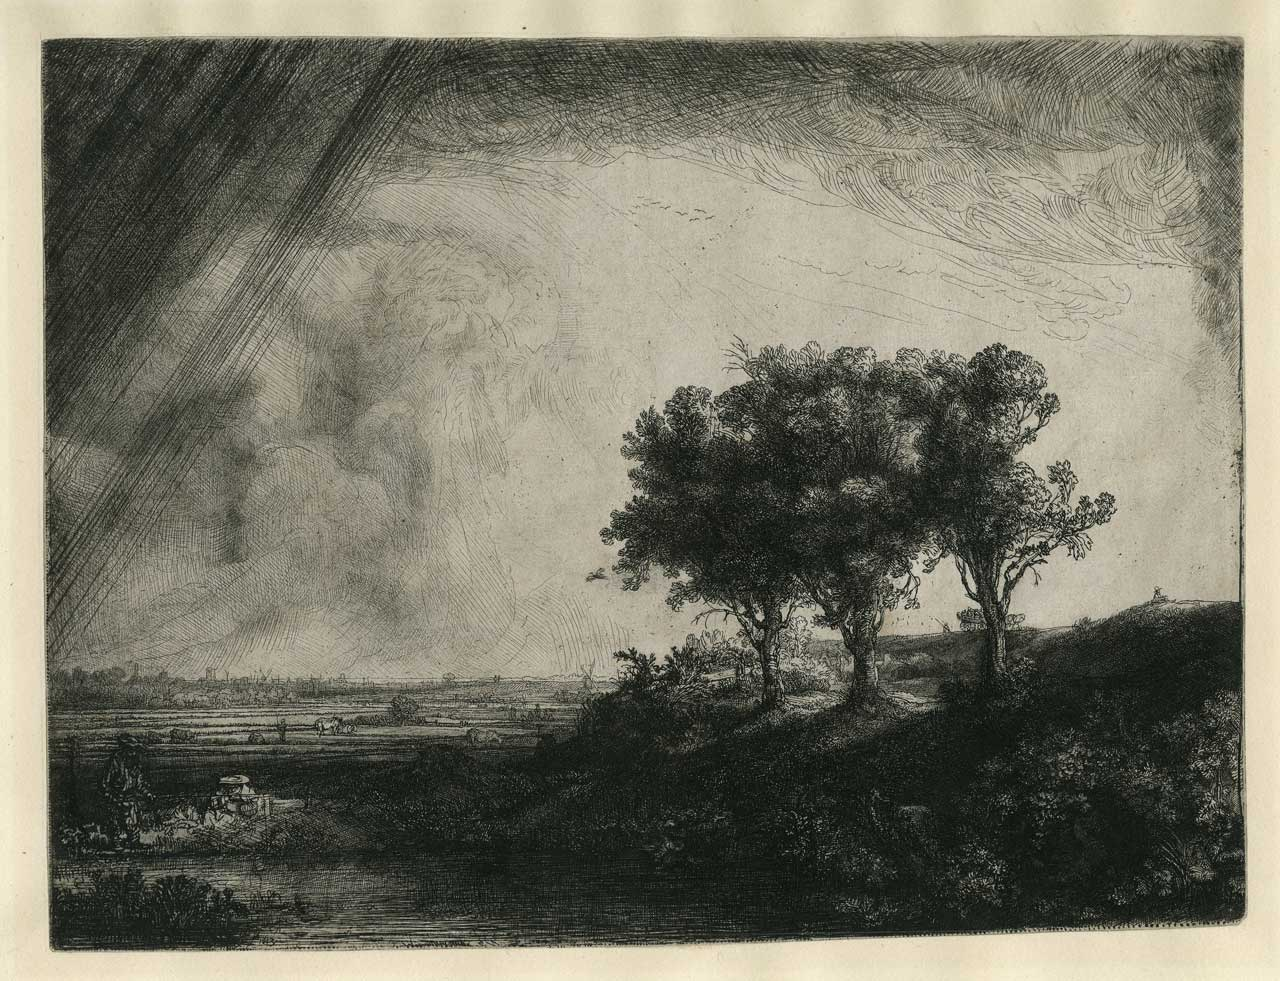 Rembrandt Harmenszoon van Rijn, The Three Trees, 1643